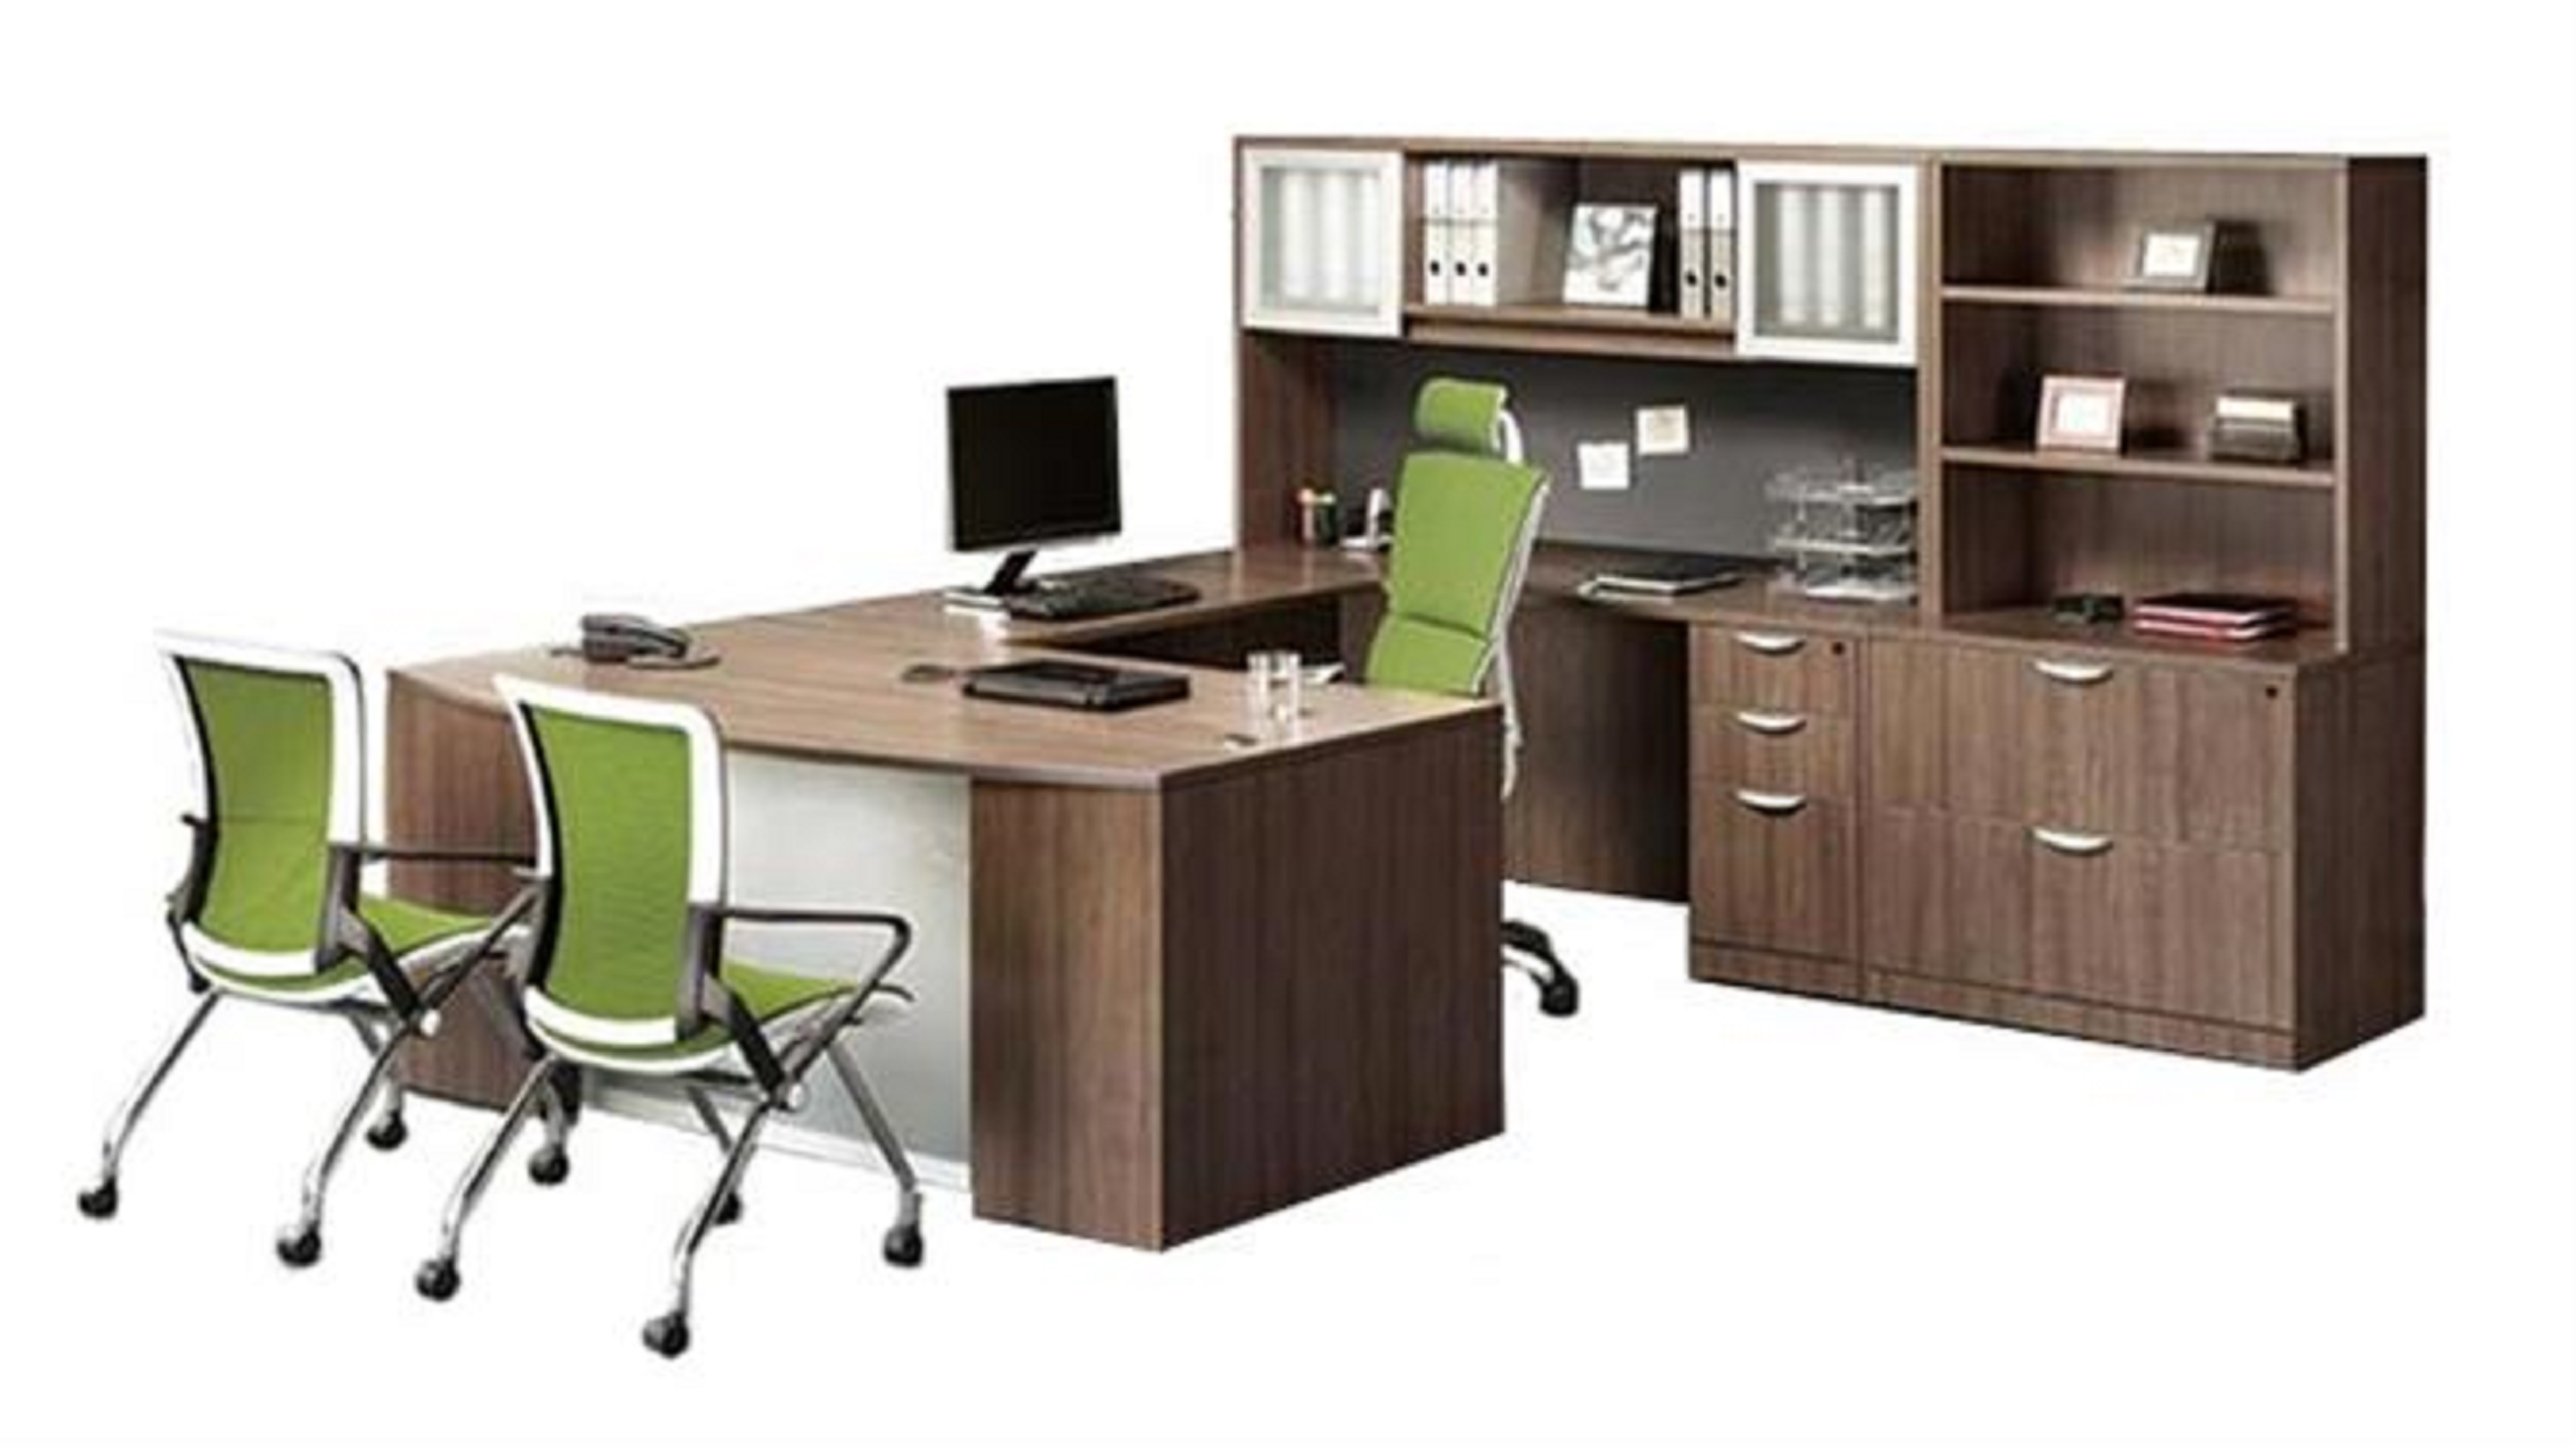 Furniture Office Outlet Me Near